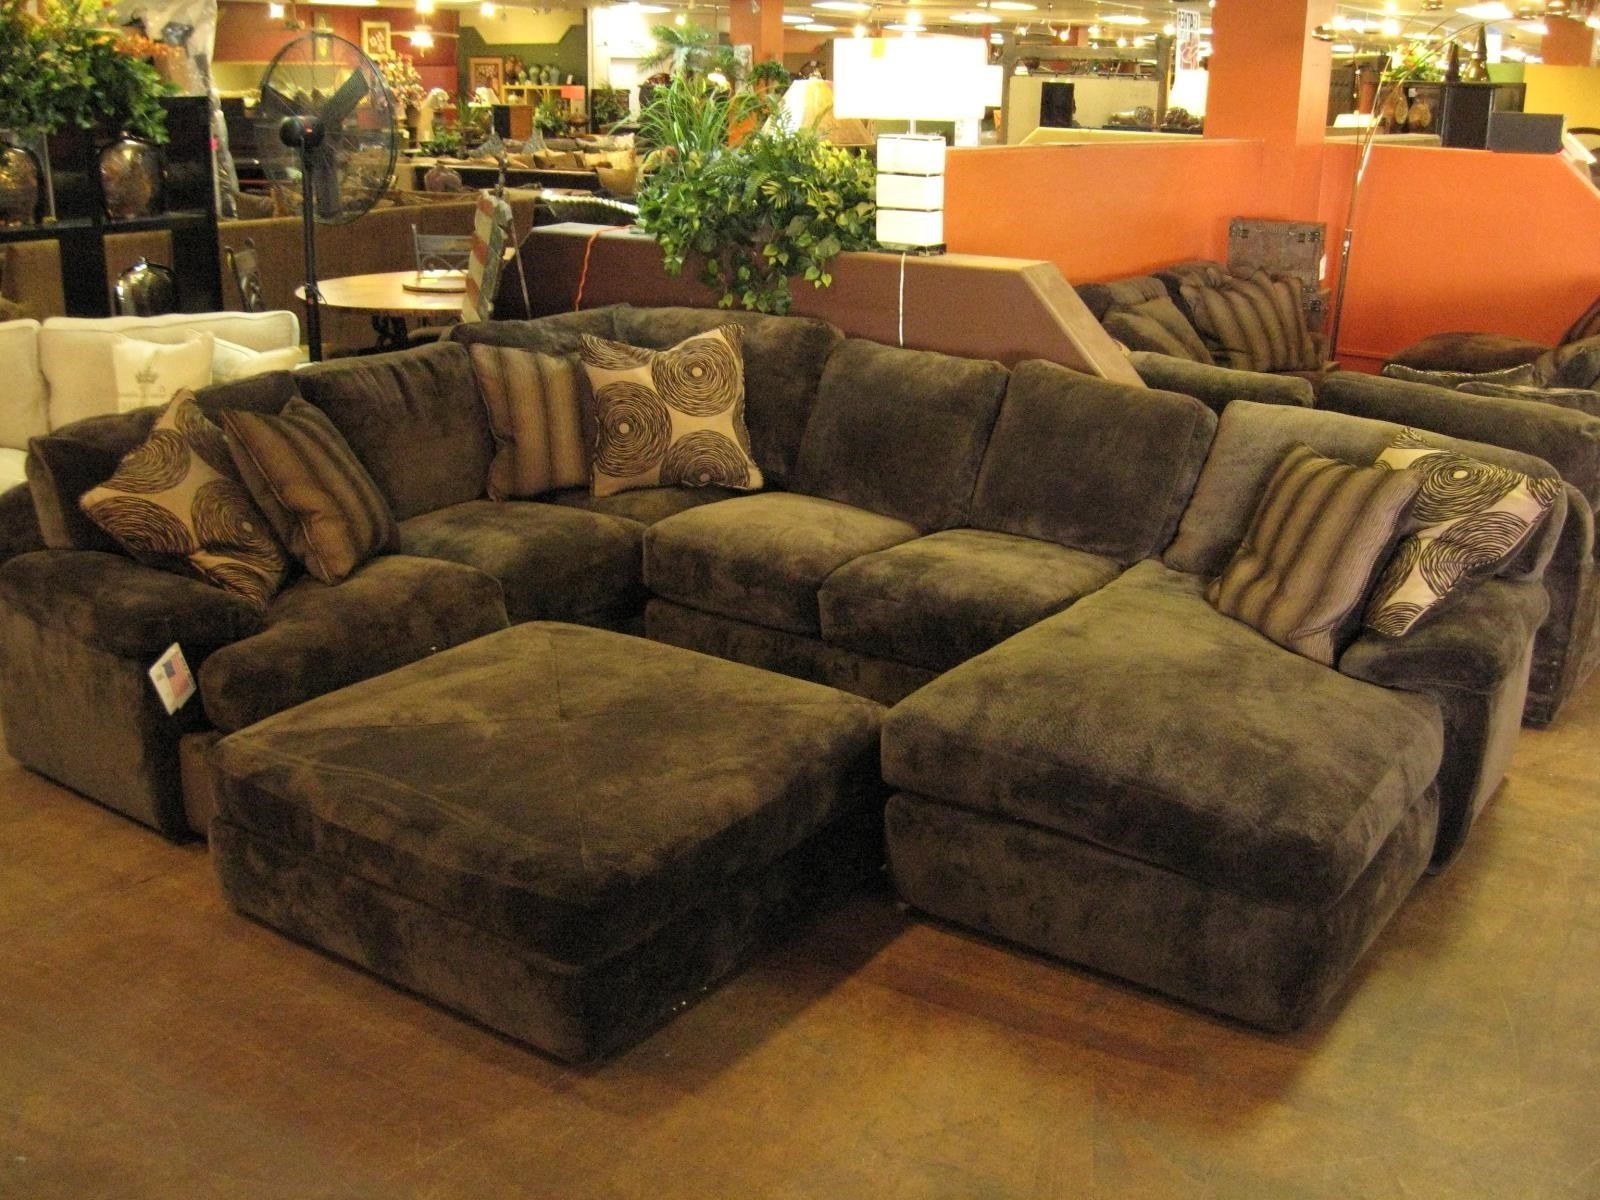 Sectional Sofas Large Sofa With Ottoman Regard To Idea 11 Pertaining To Sectionals With Oversized Ottoman (Image 7 of 10)